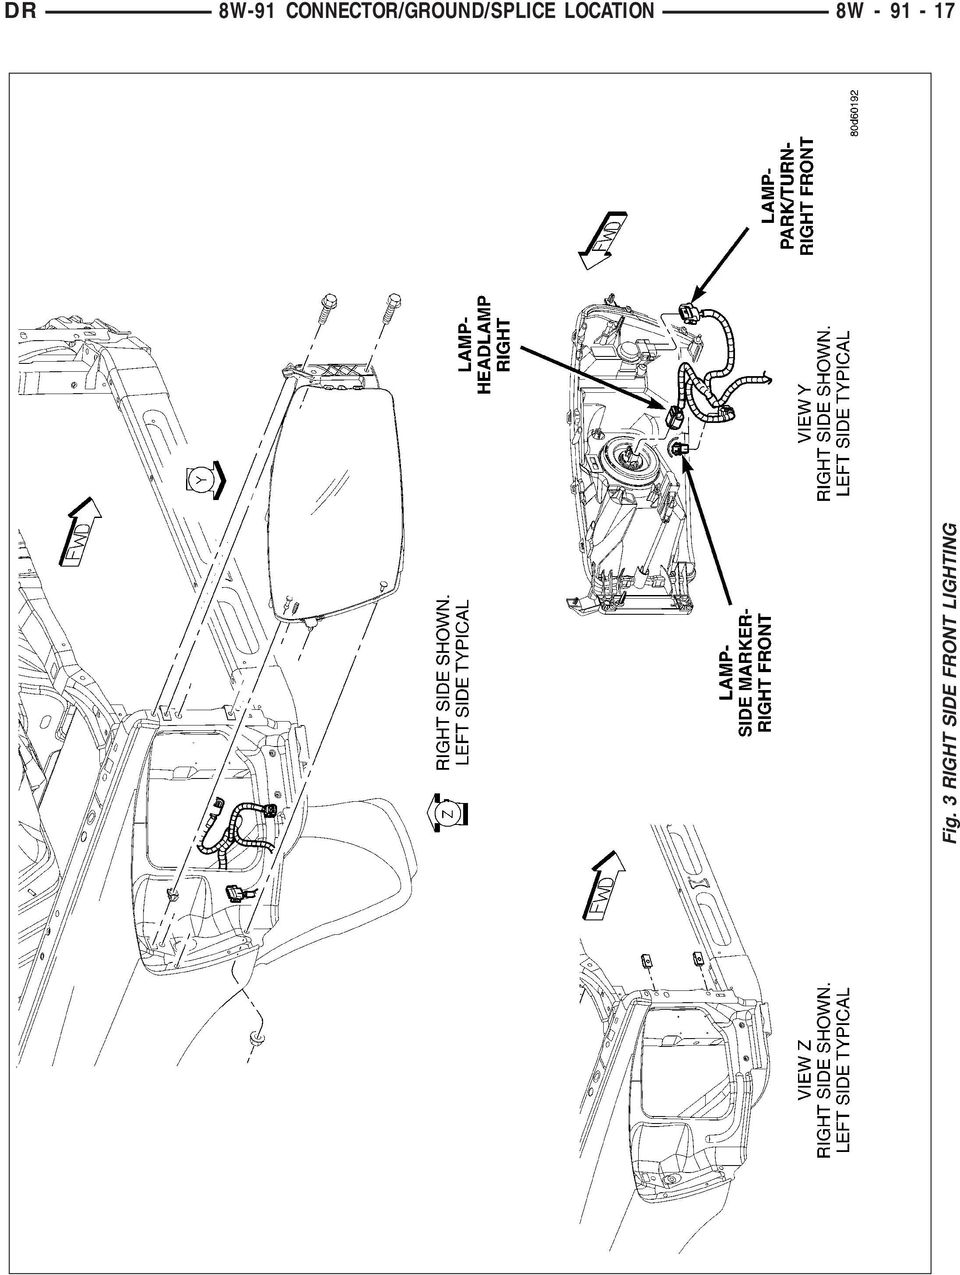 Connector Ground Splice Location Pdf 2011 Subaru Legacy Fuse Diagram Light 17 Dr 8w 91 Fig 3 Right Side Front Lighting